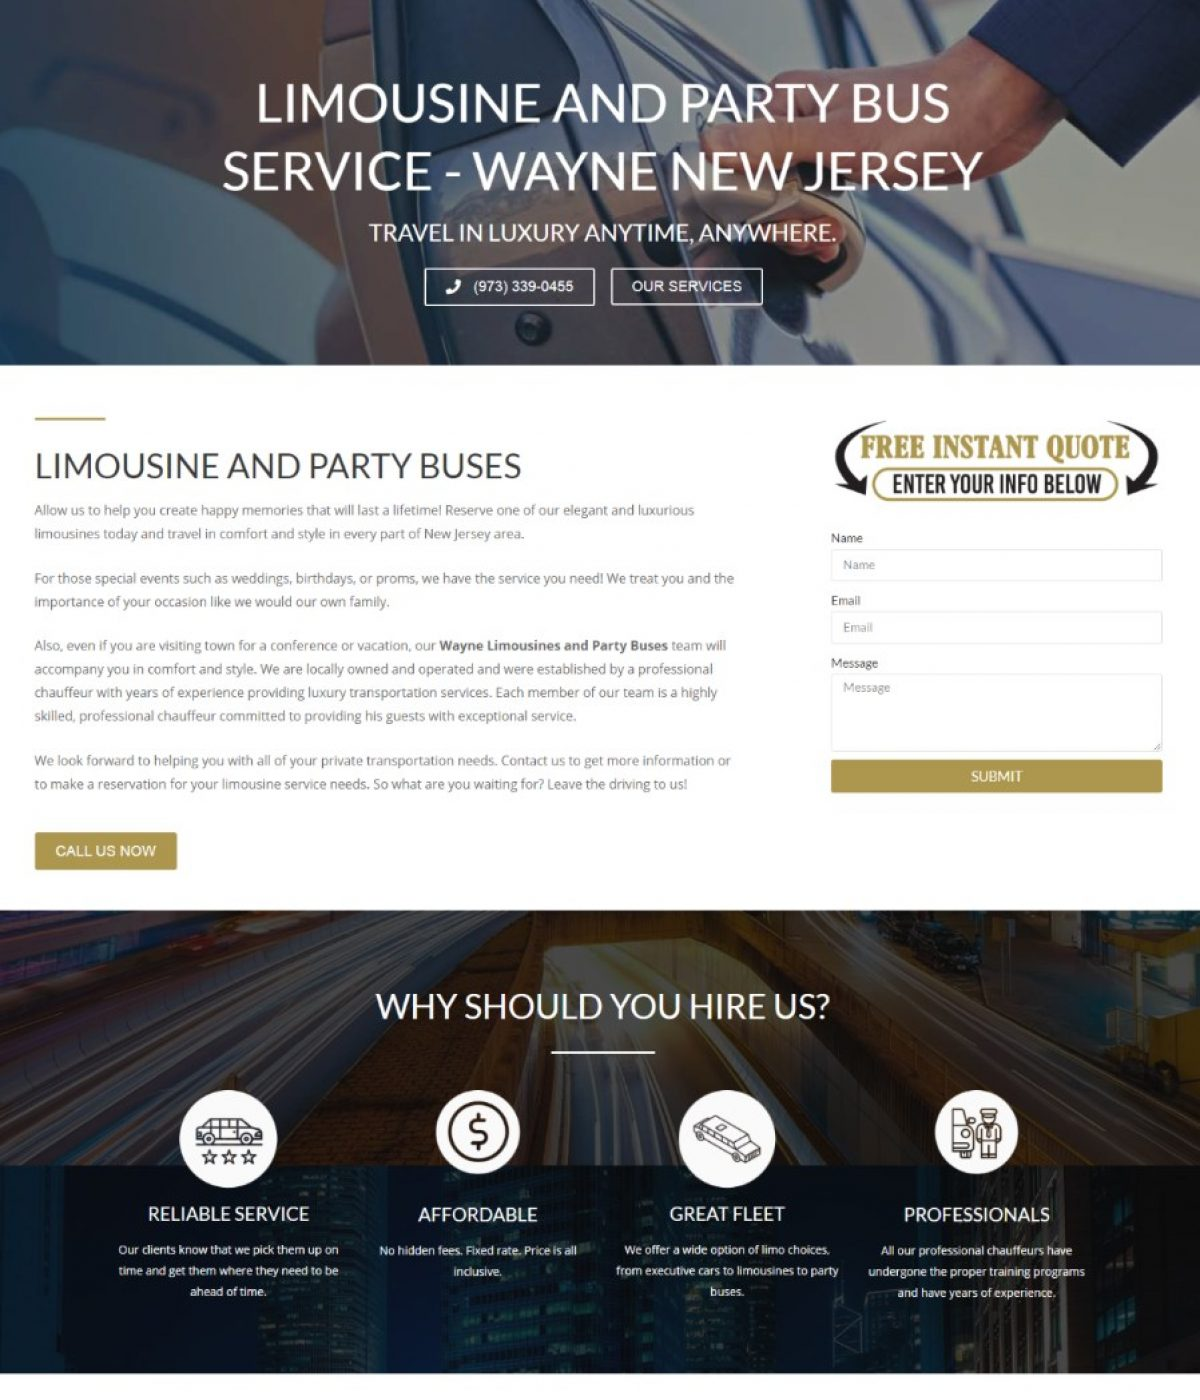 wayne limousines by mtb strategy